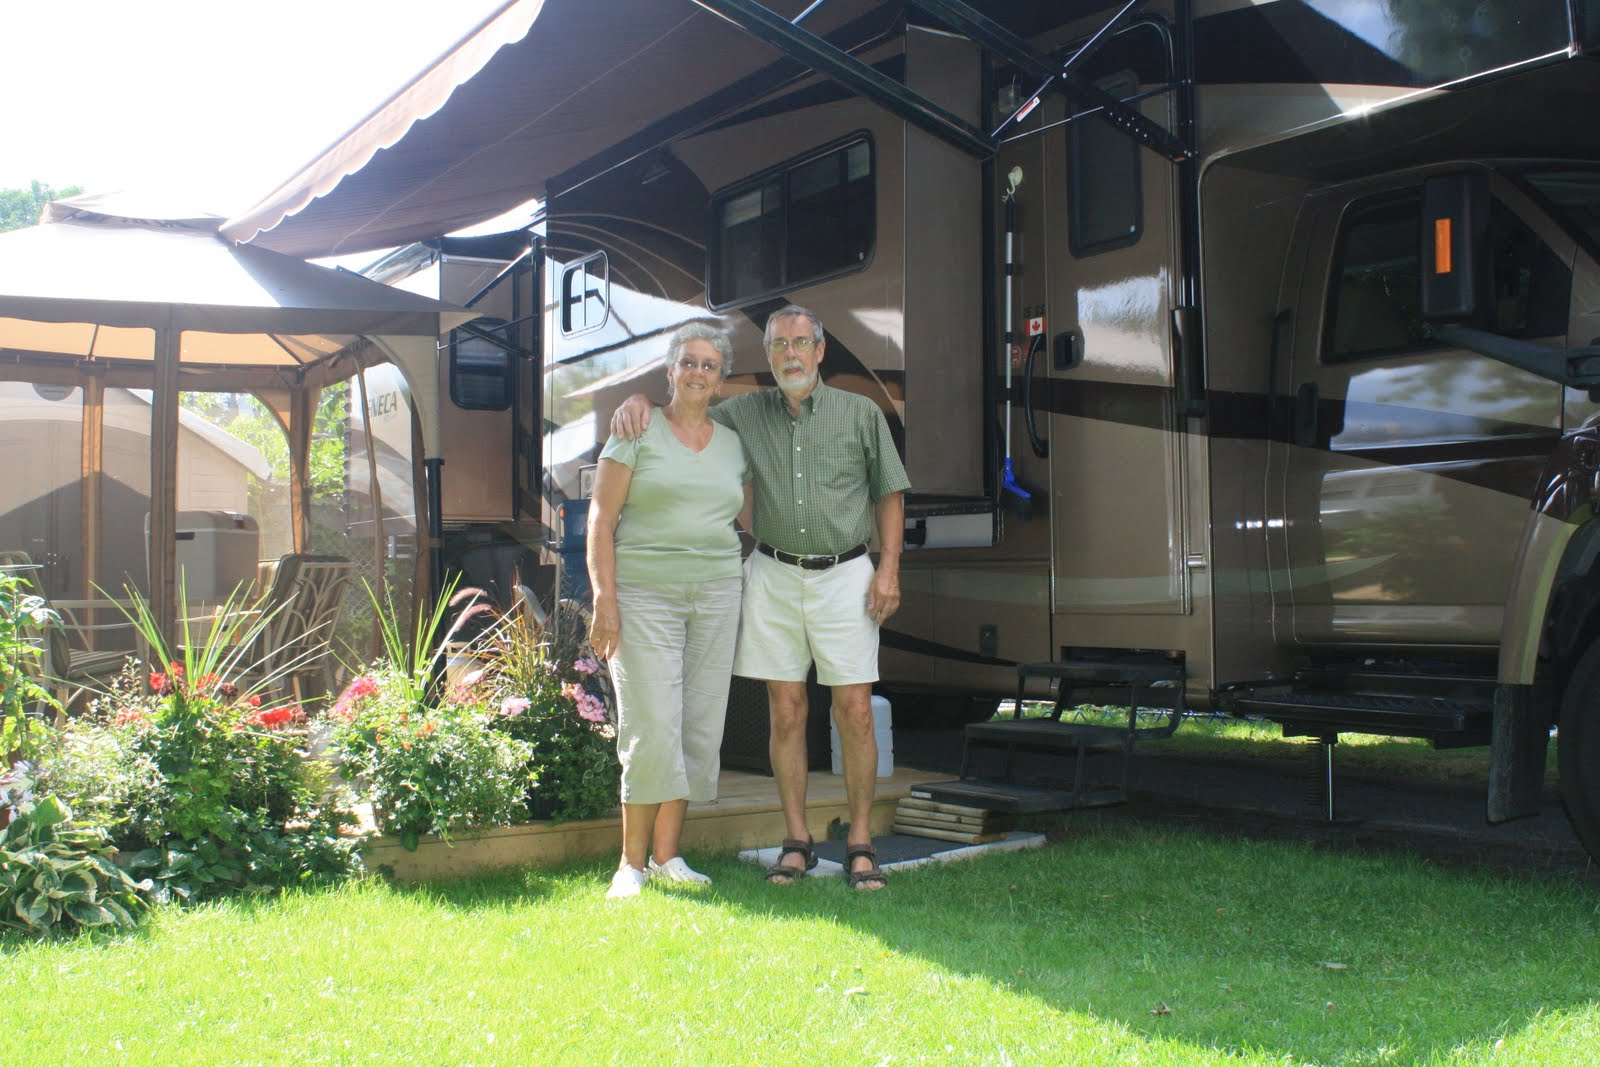 private campground guide in ontario